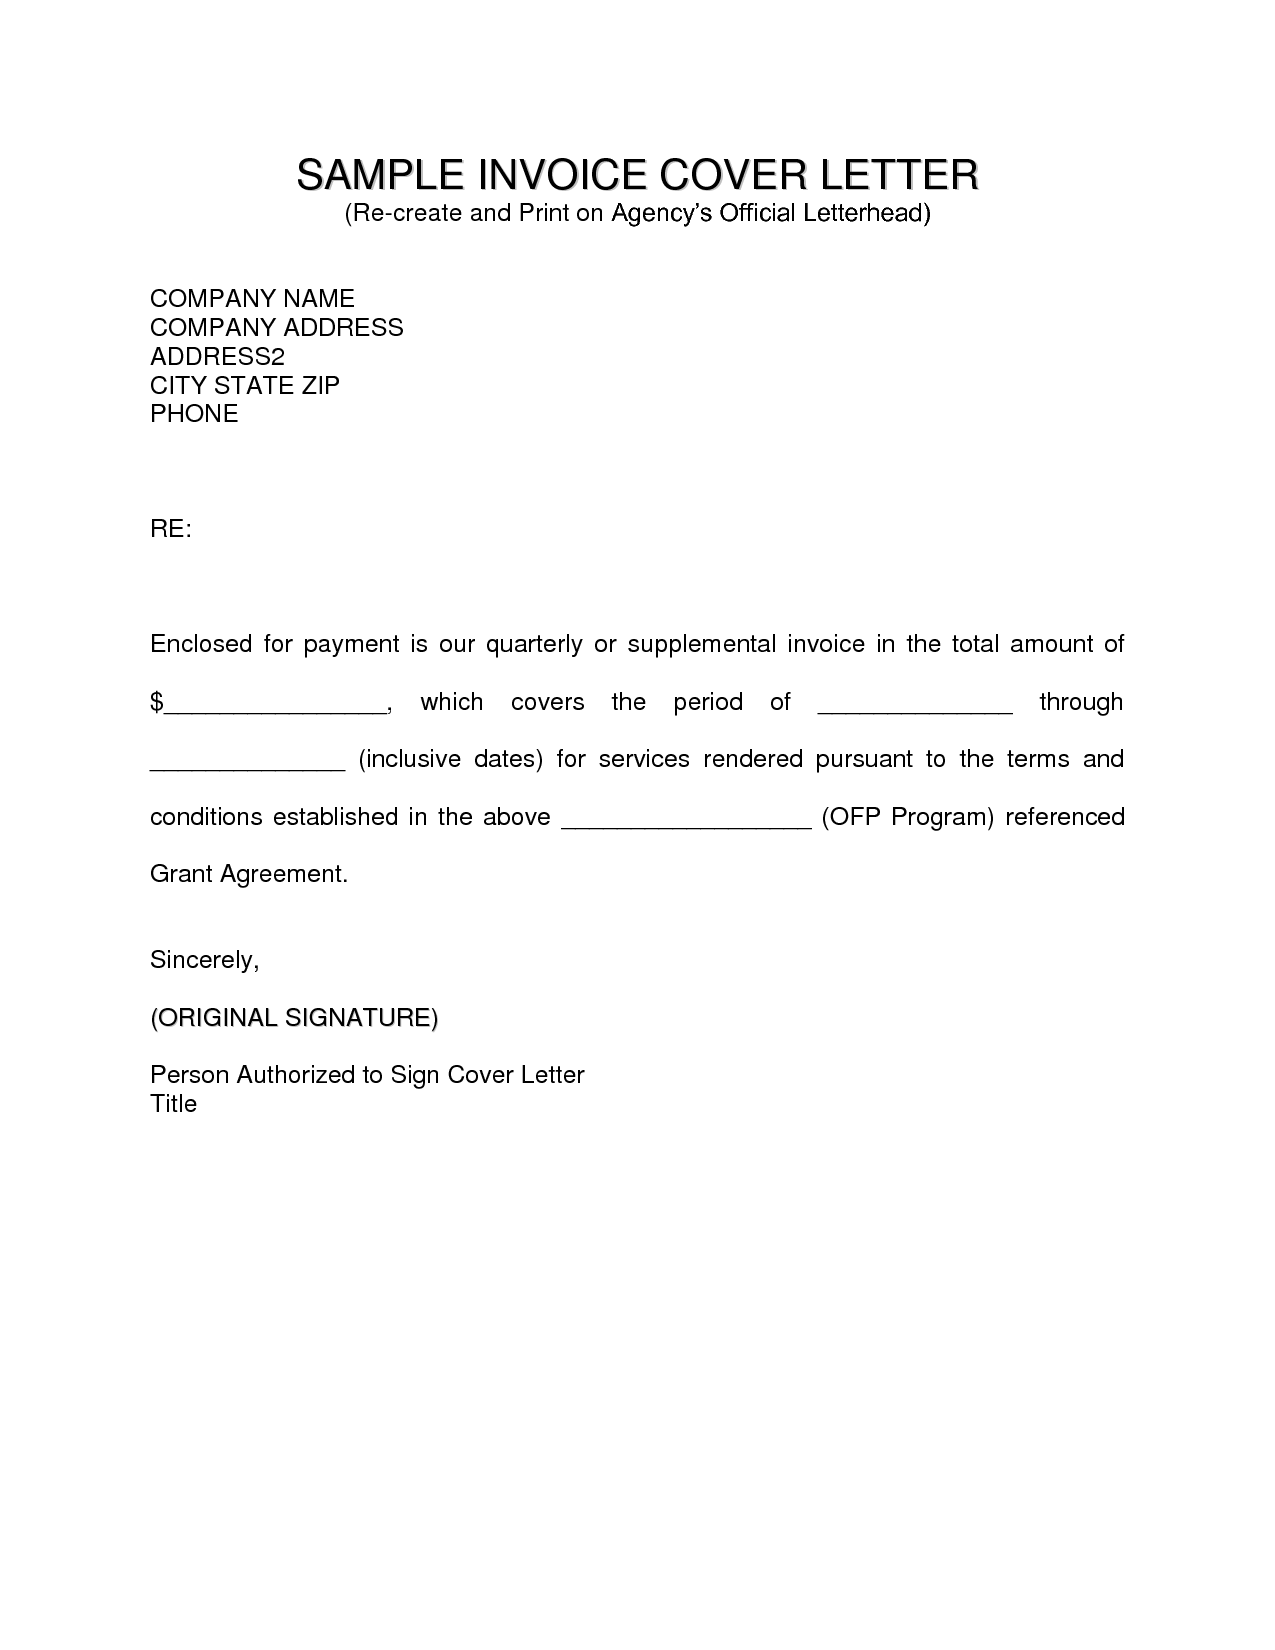 Short Application Cover Letter Best Images Billing Letter Format Invoice Cover Sample  Home